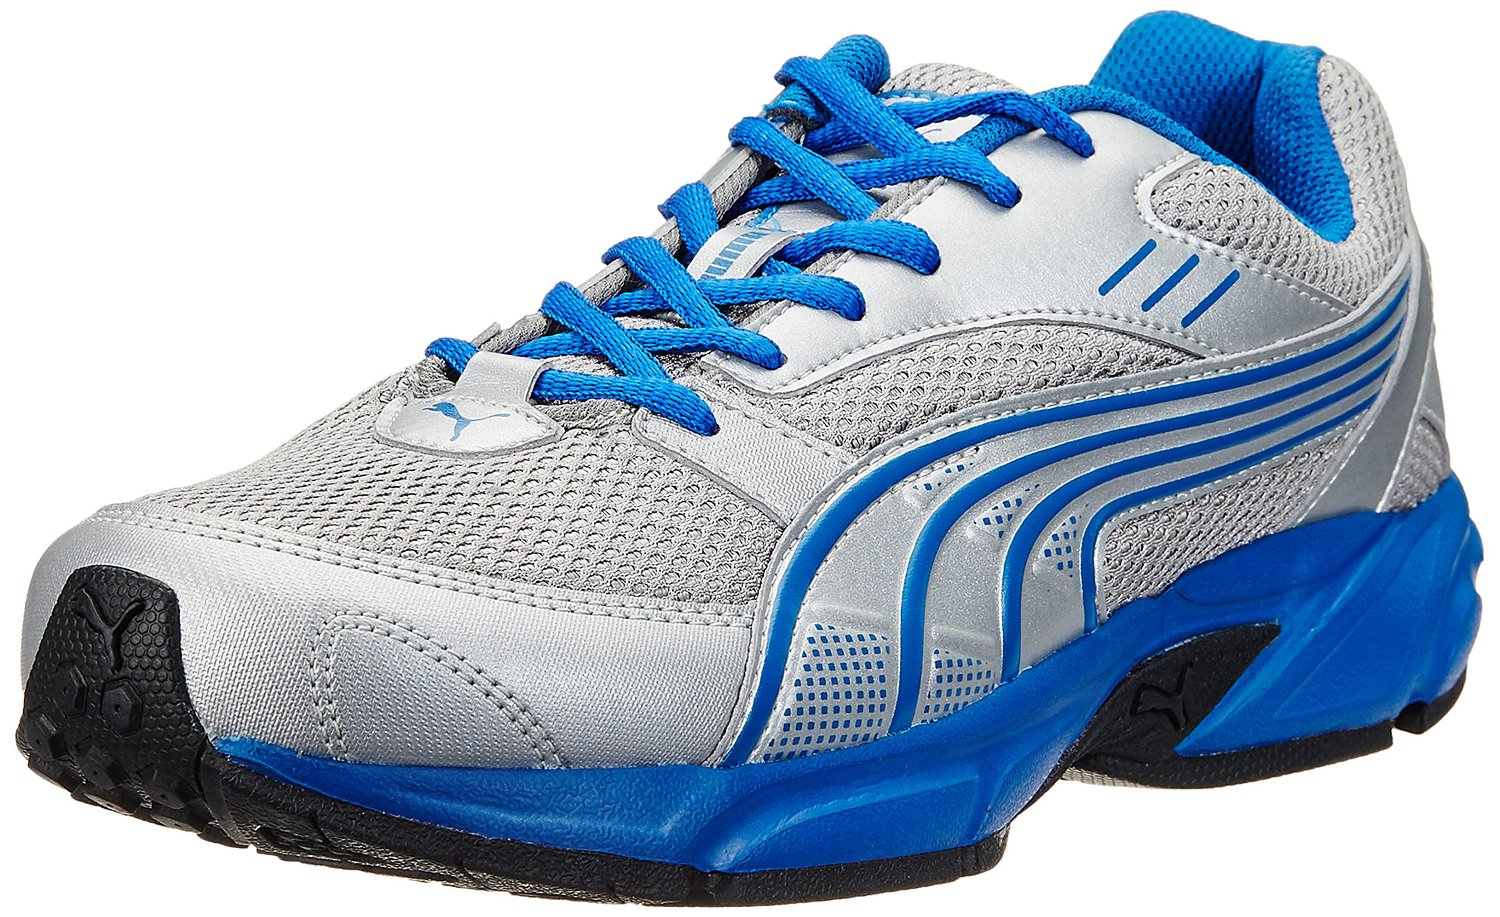 Puma Mens Pluto Dp Running Shoes 18877208: Buy Online from ...